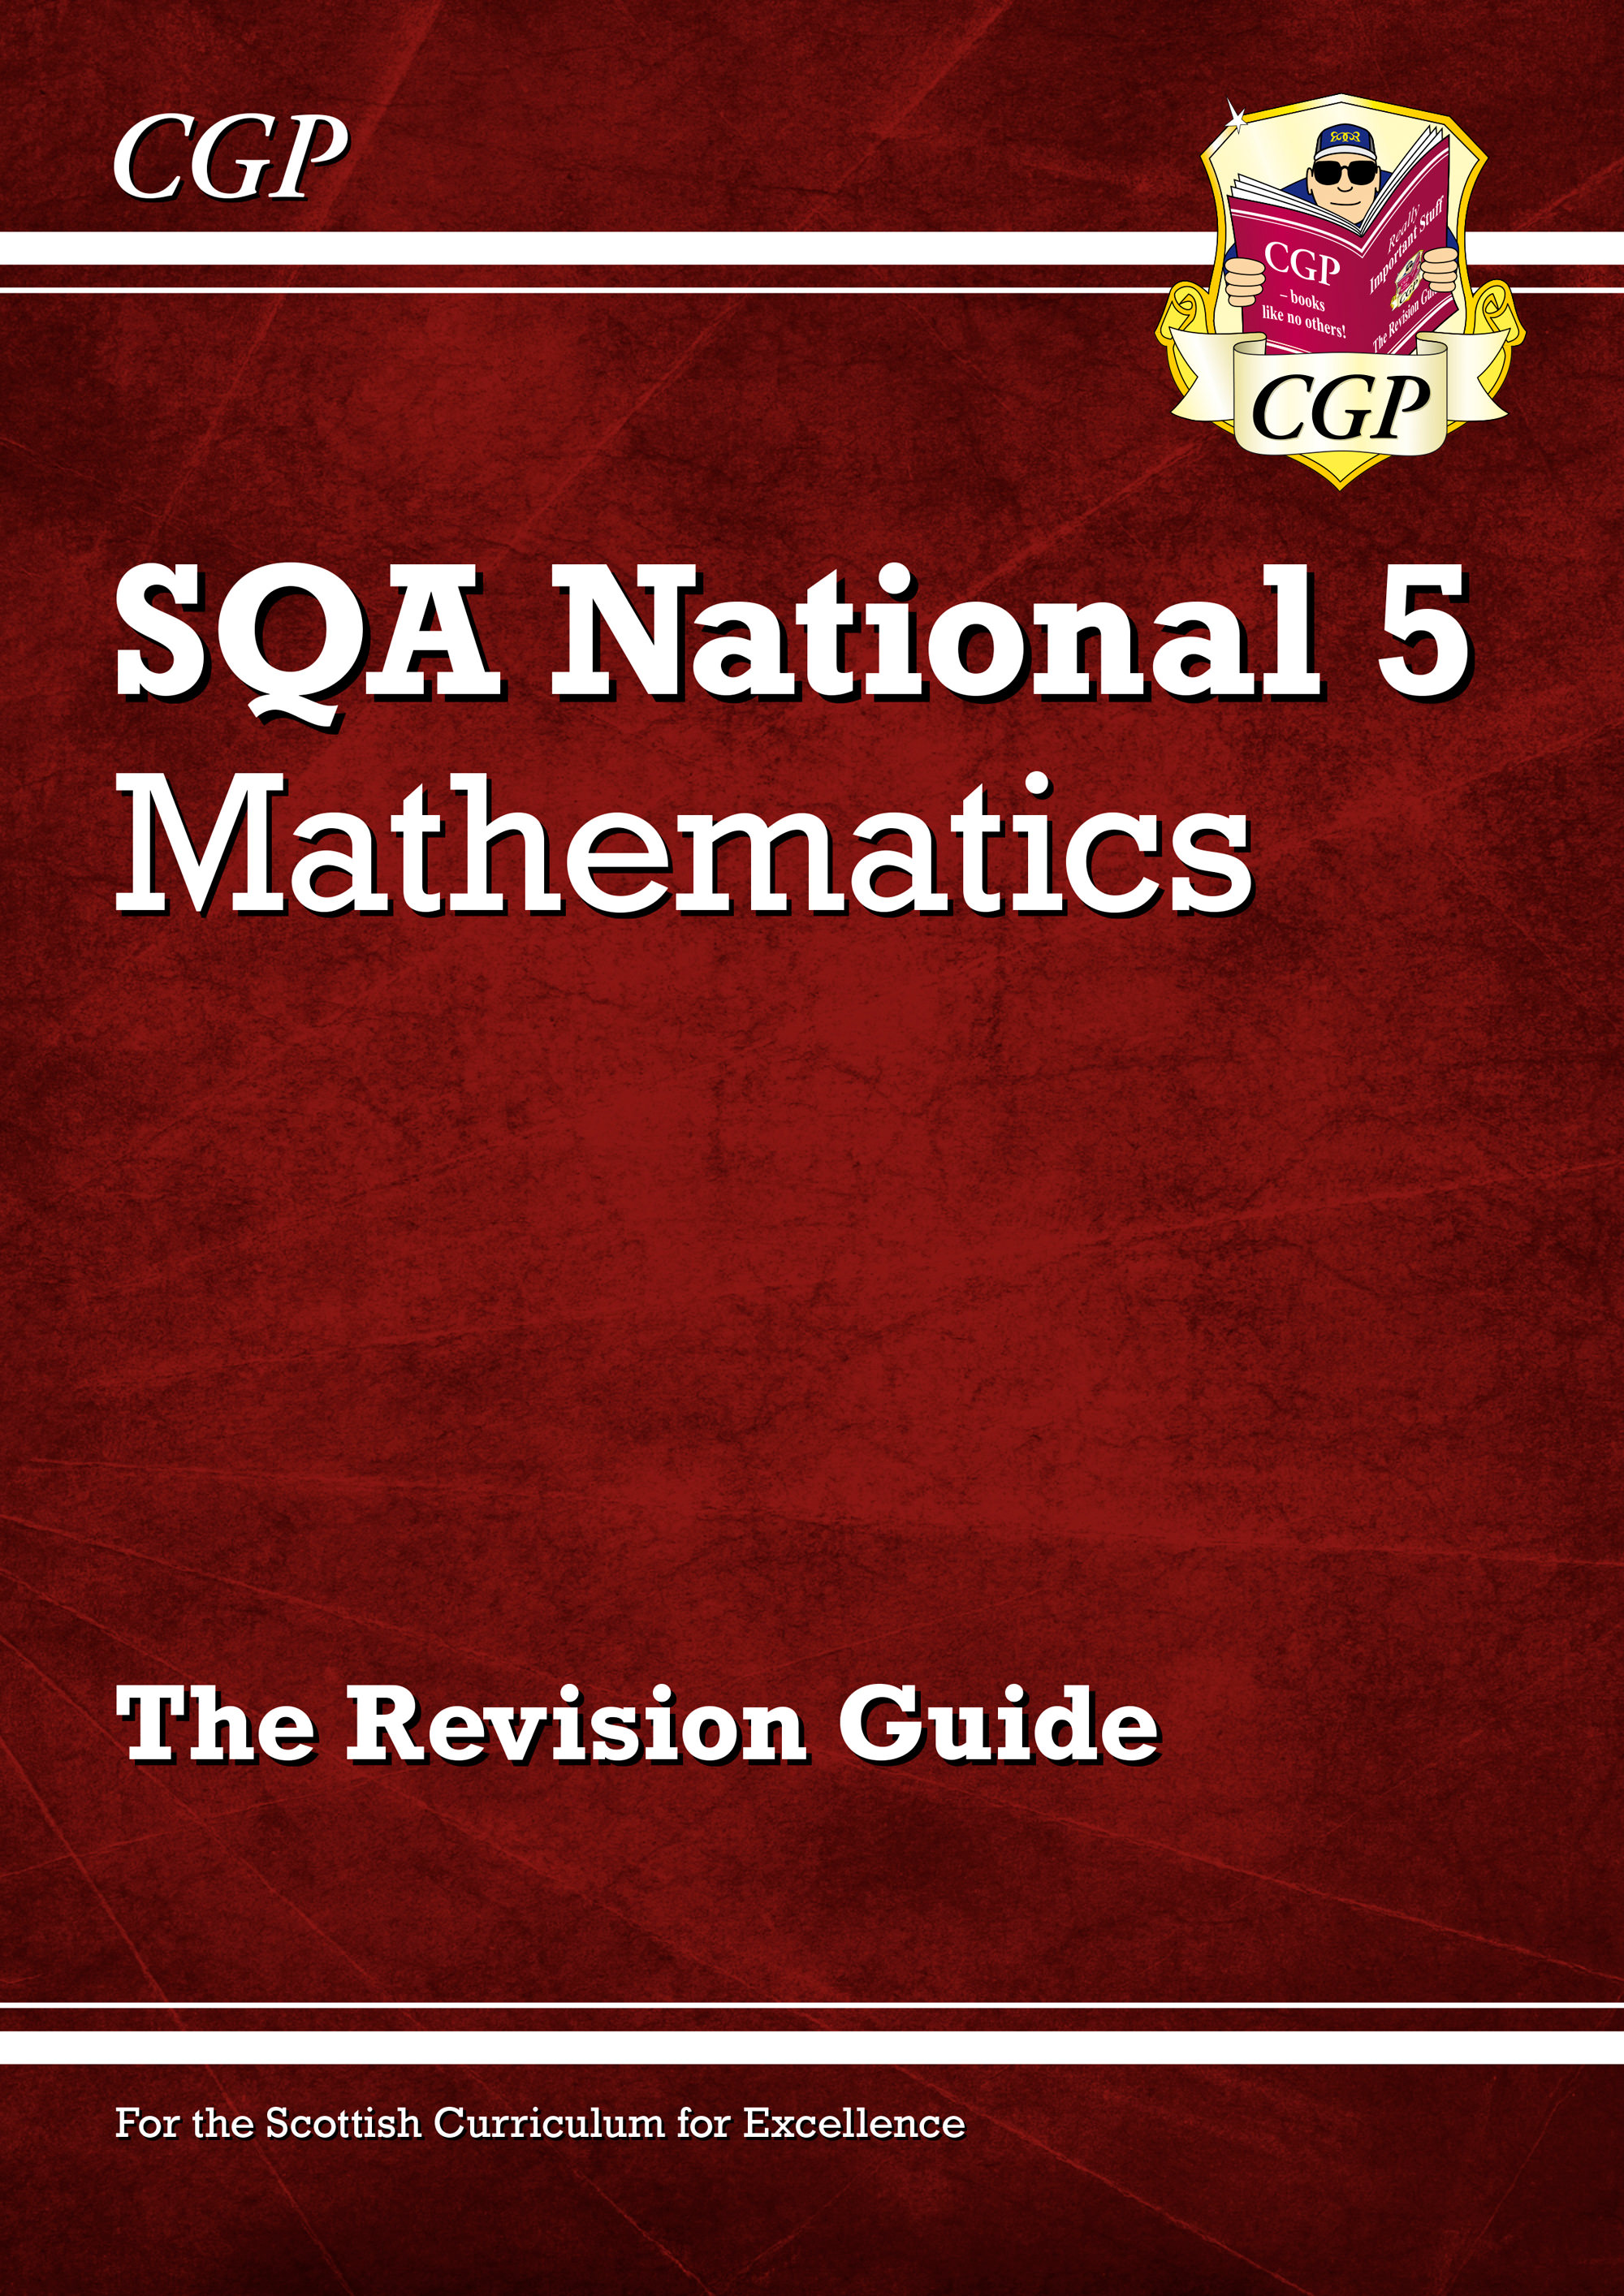 MZHR41DK - New National 5 Maths: SQA Revision Guide